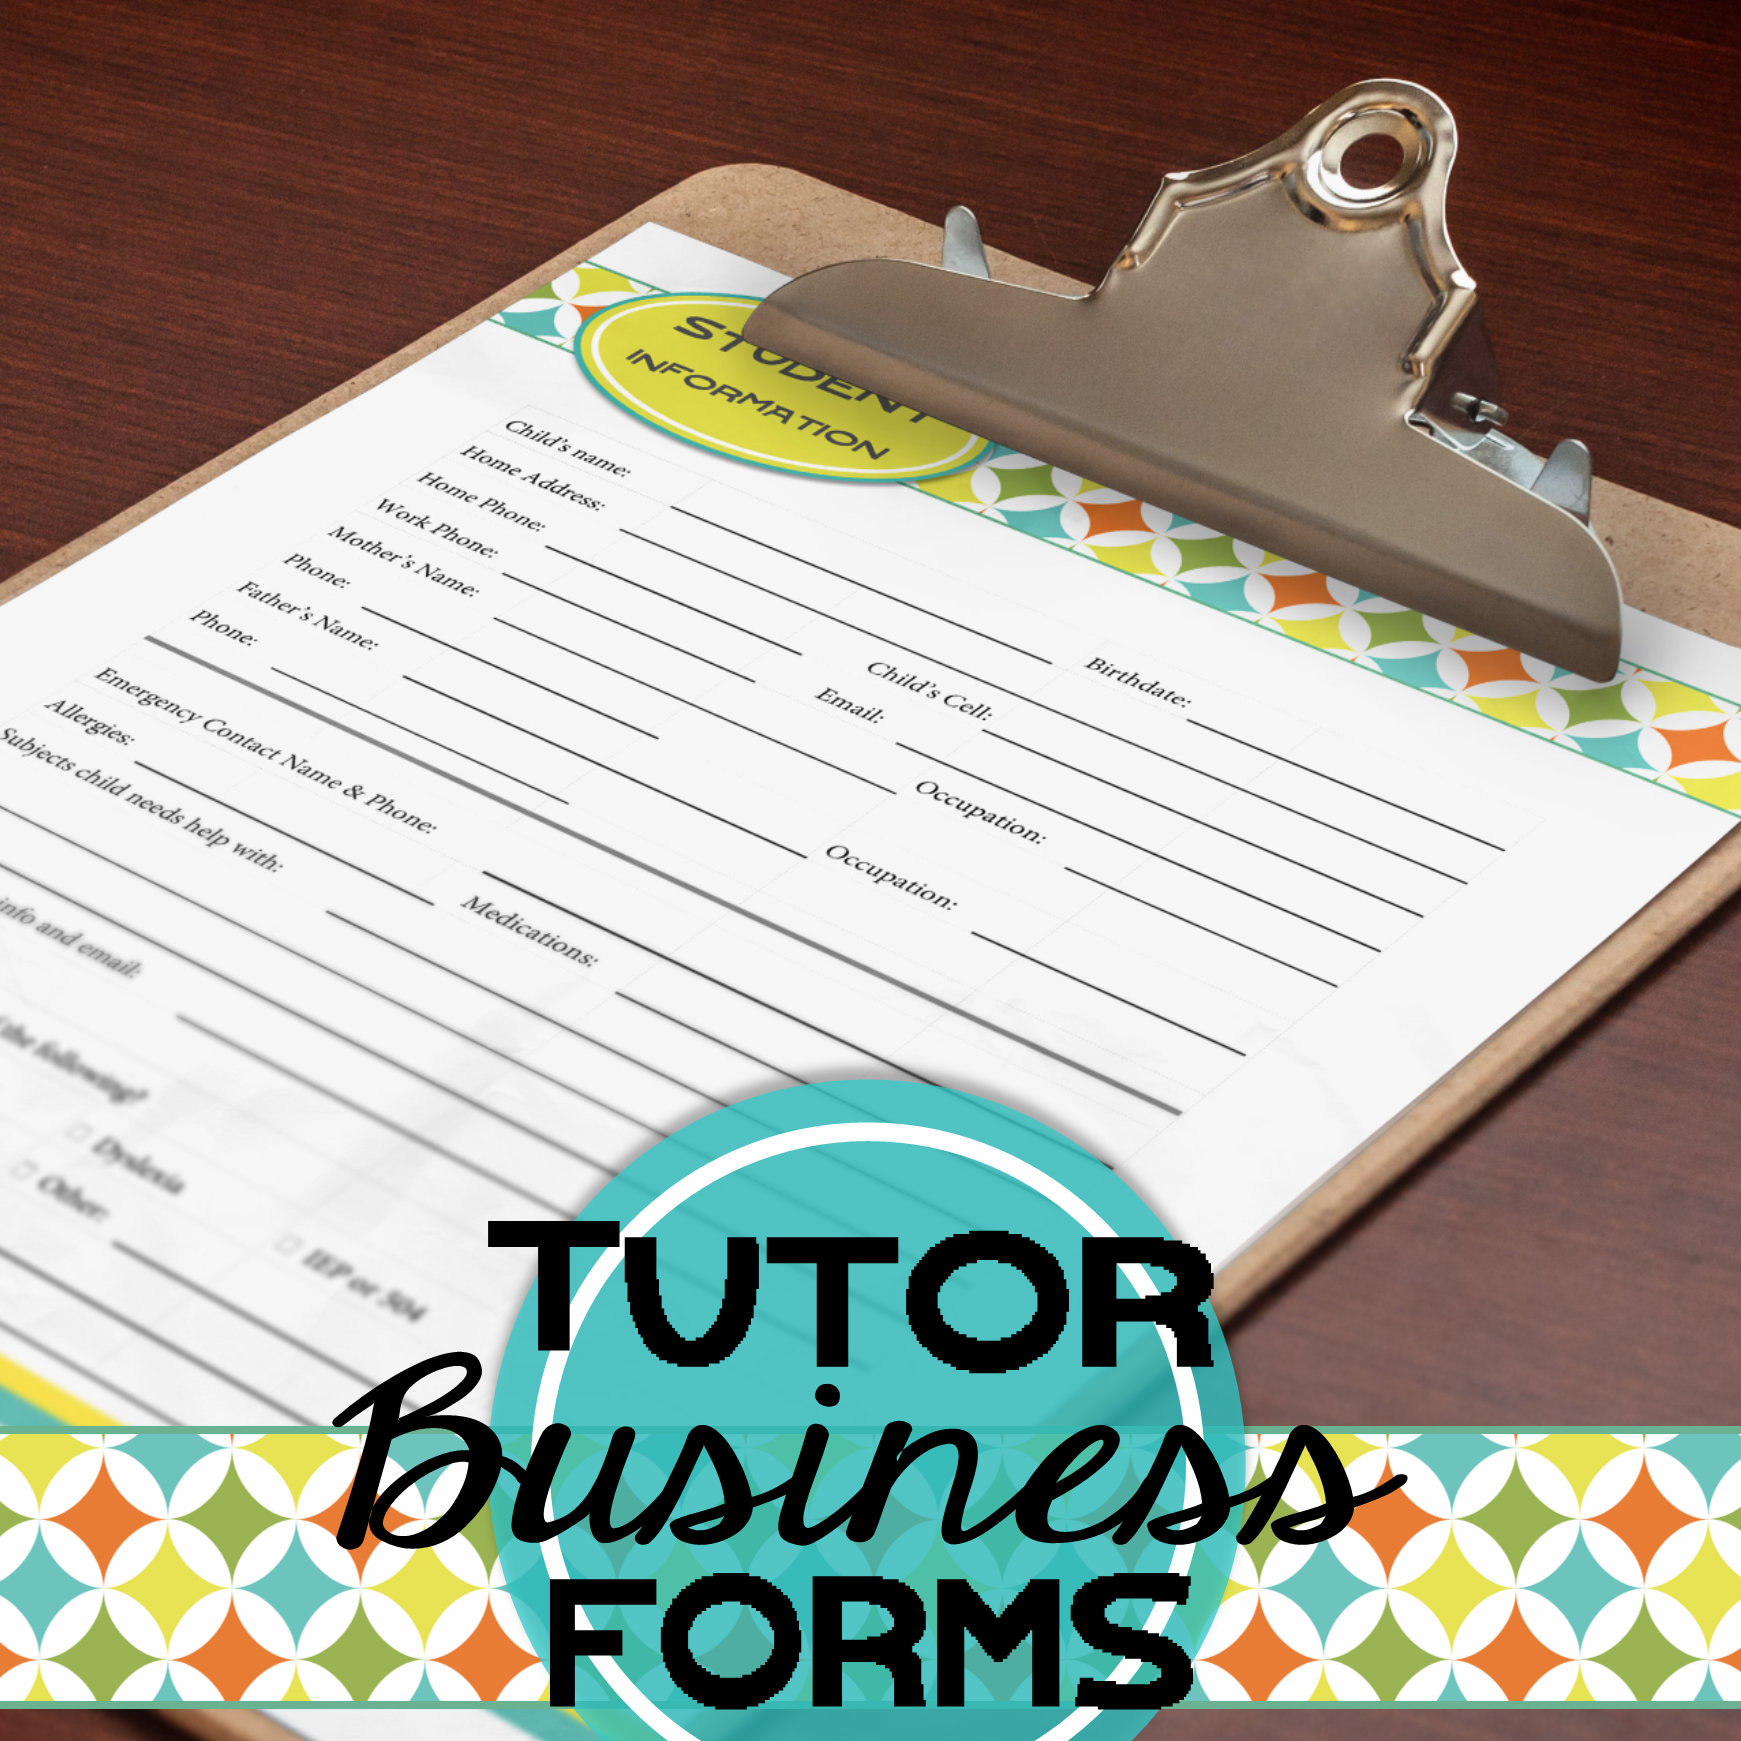 Tutor Business Forms…A Change for the Better